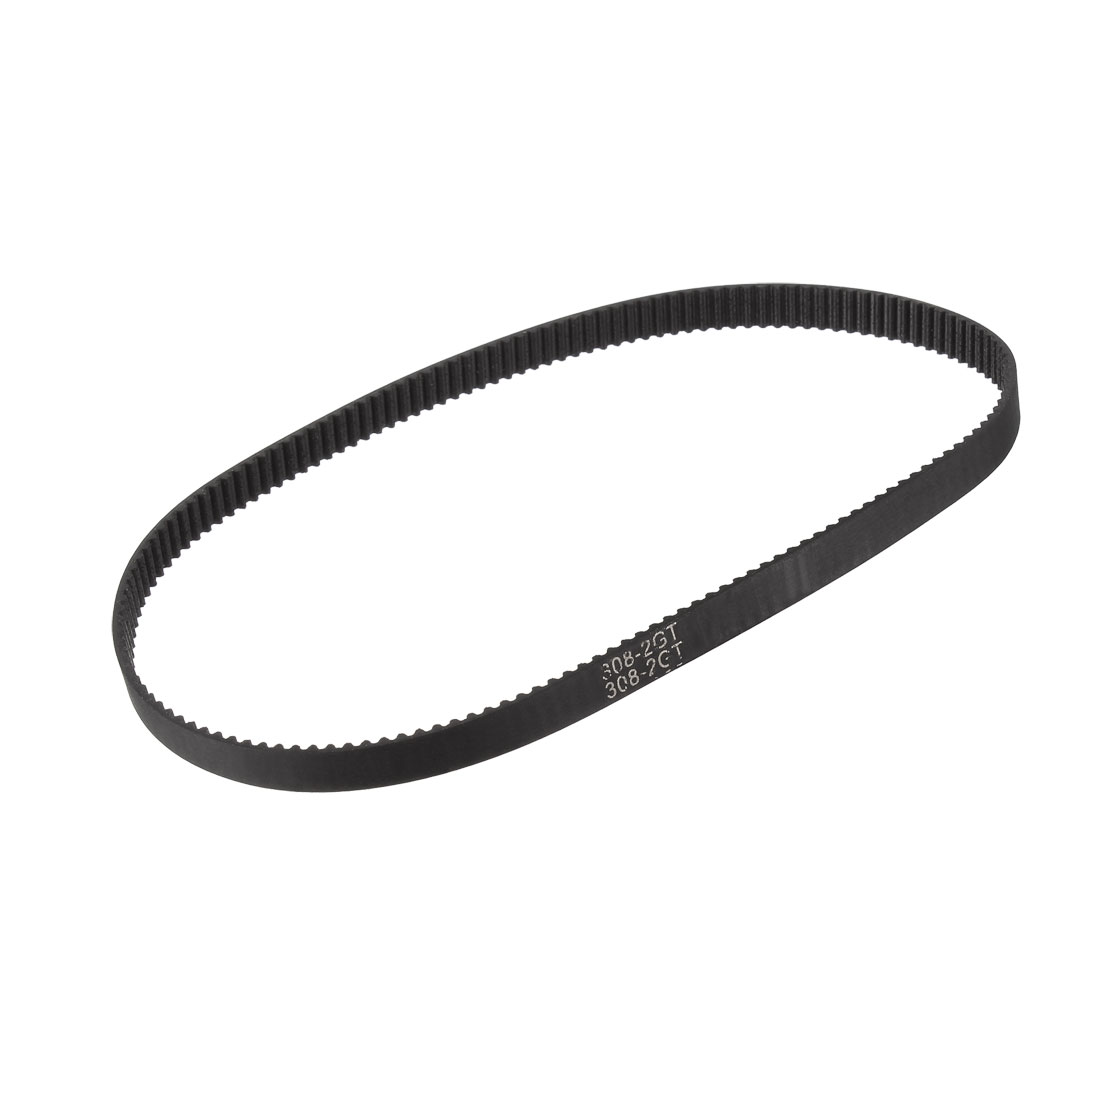 GT2 Timing Belt 308mm Closed Fit Synchronous Wheel for 3D Printer